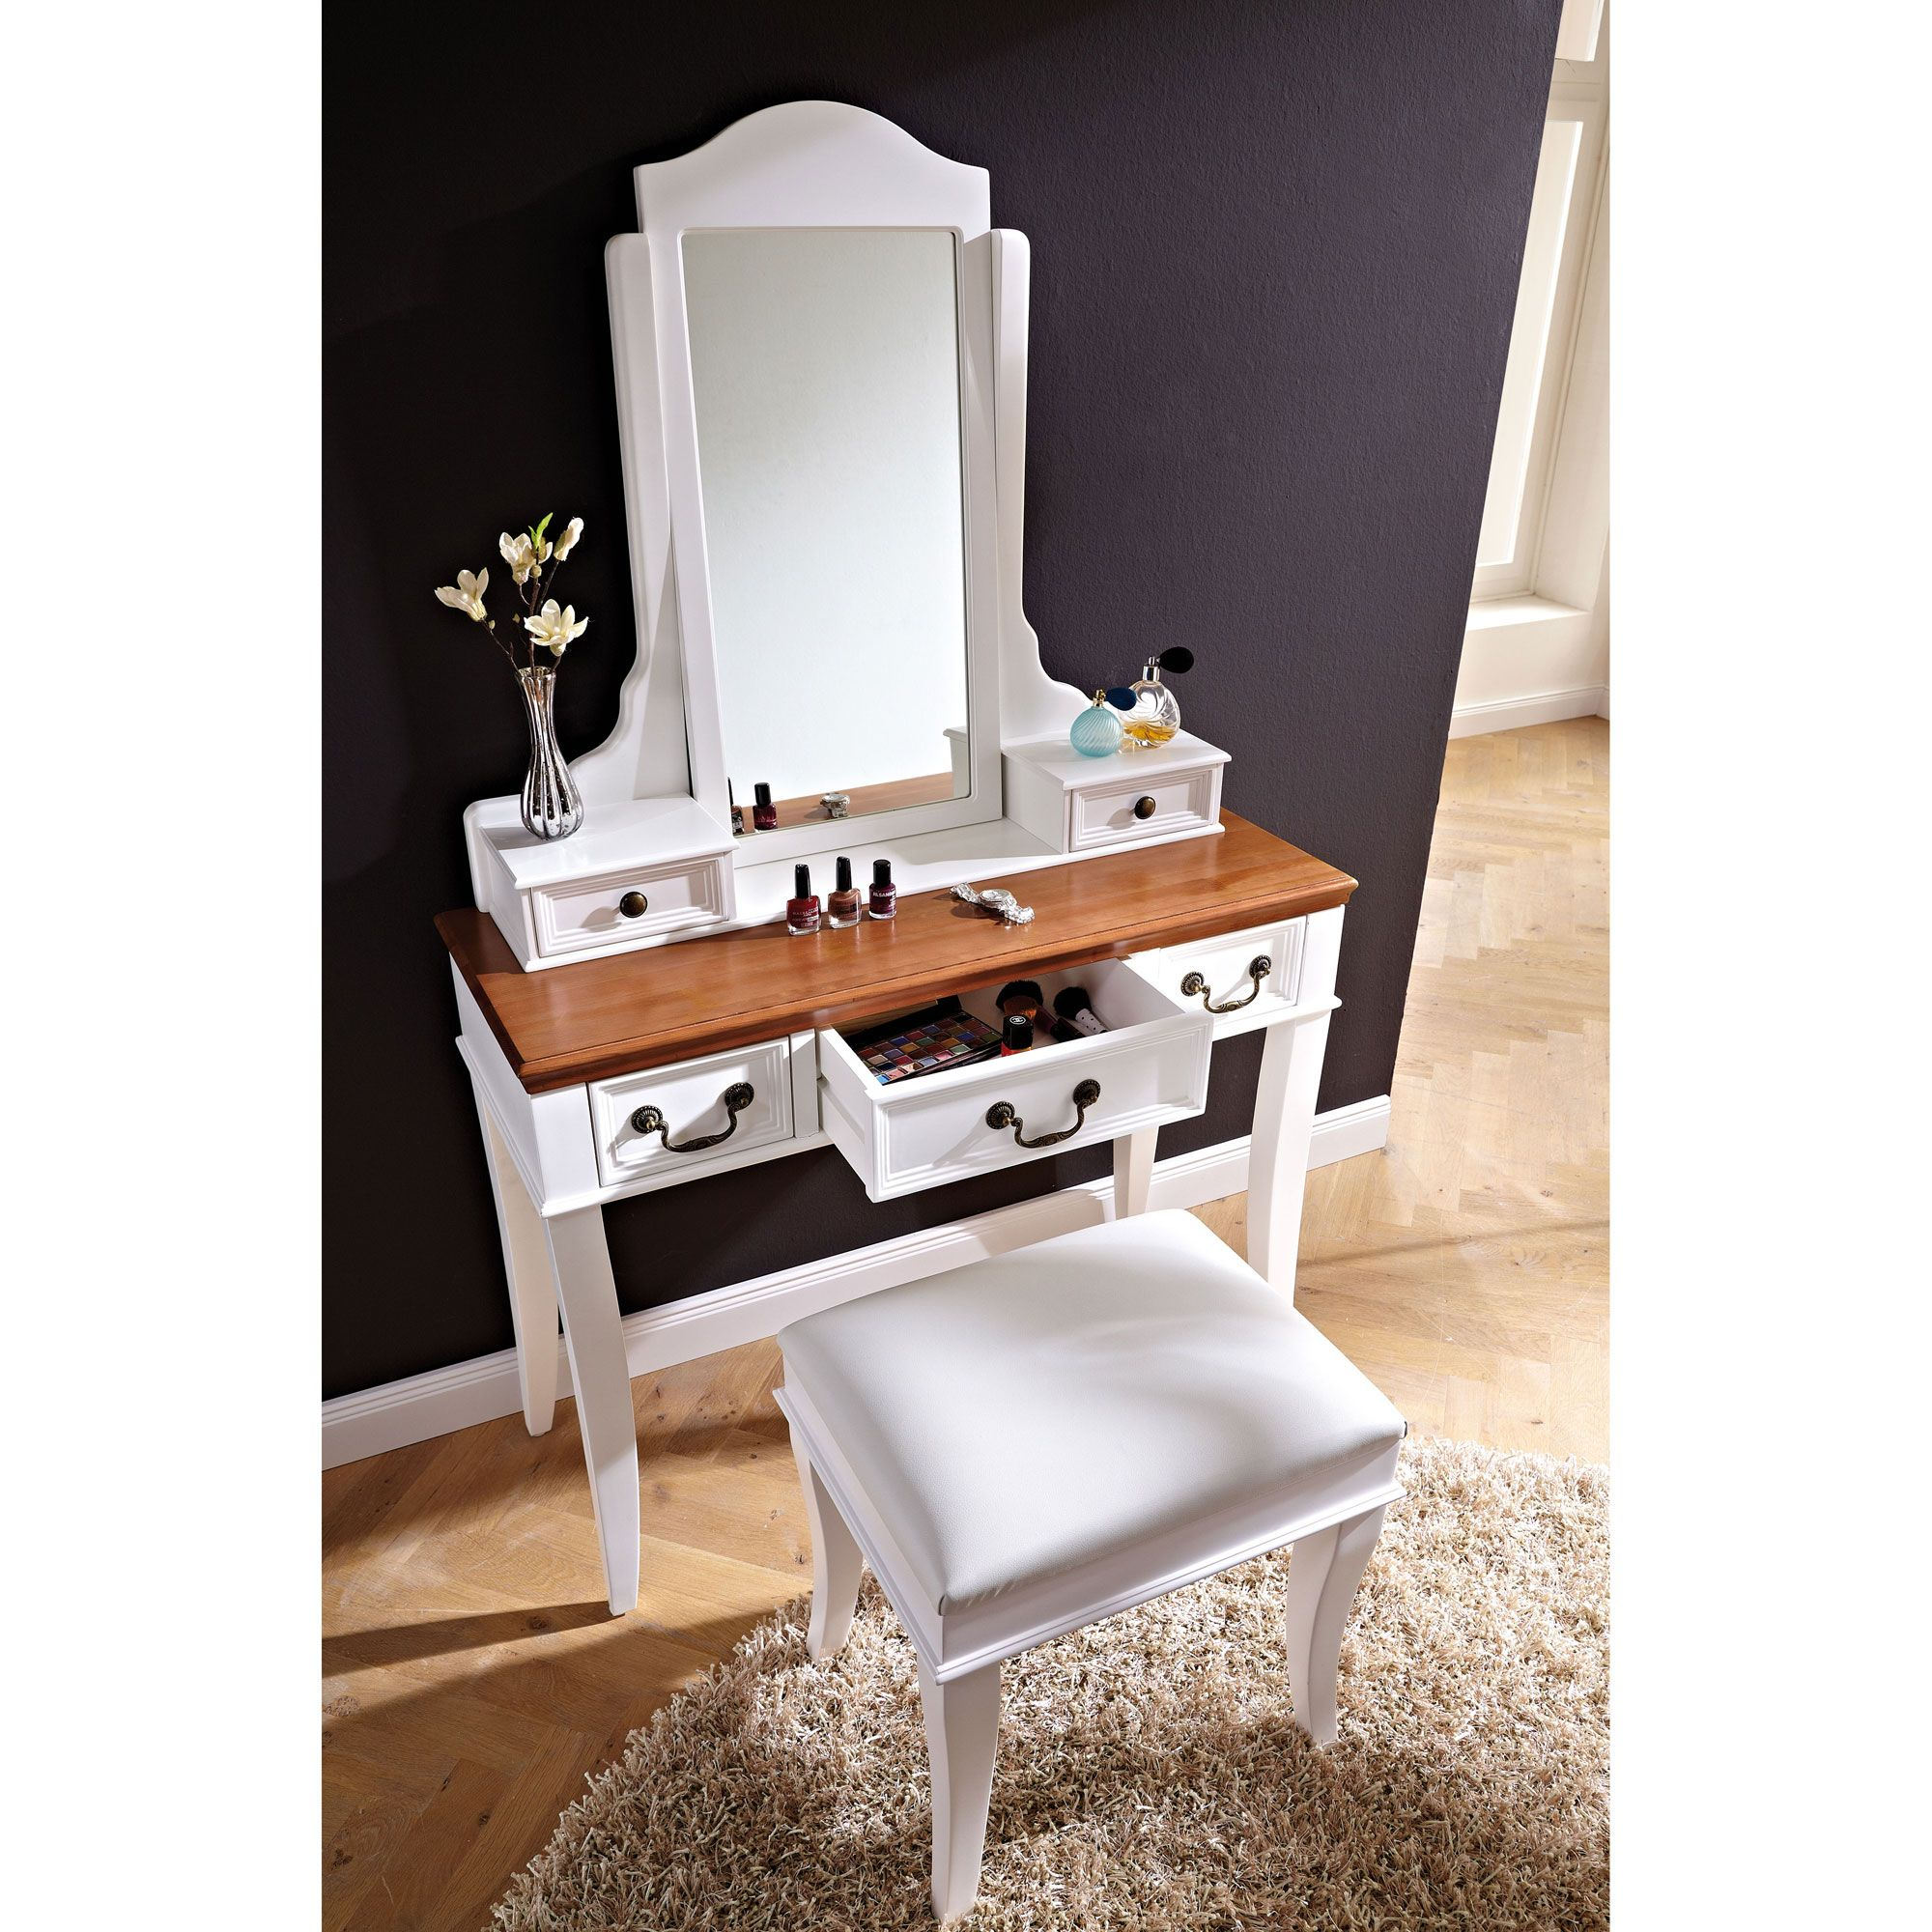 coiffeuse bois miroir inclinable tabouret j 39 adoreeeeeeeeeeeeeeeeeeeeeeeee chambre alex. Black Bedroom Furniture Sets. Home Design Ideas